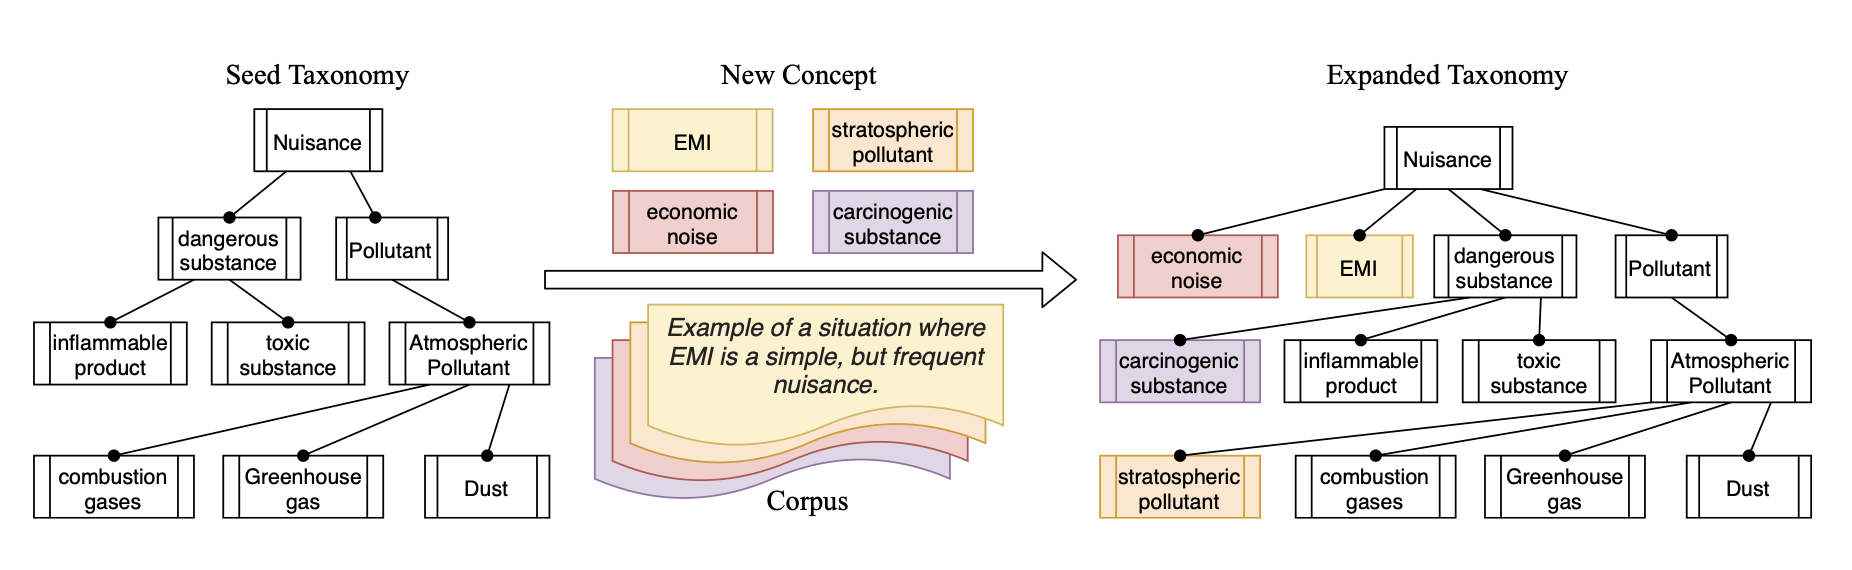 Illustration of the taxonomy expansion problem. Given an existing taxonomy, the task is to insert new concept terms (e.g., EMI, stratospheric pollutant, economic noise, carcinogenic substance) into the correct positions in the existing taxonomy